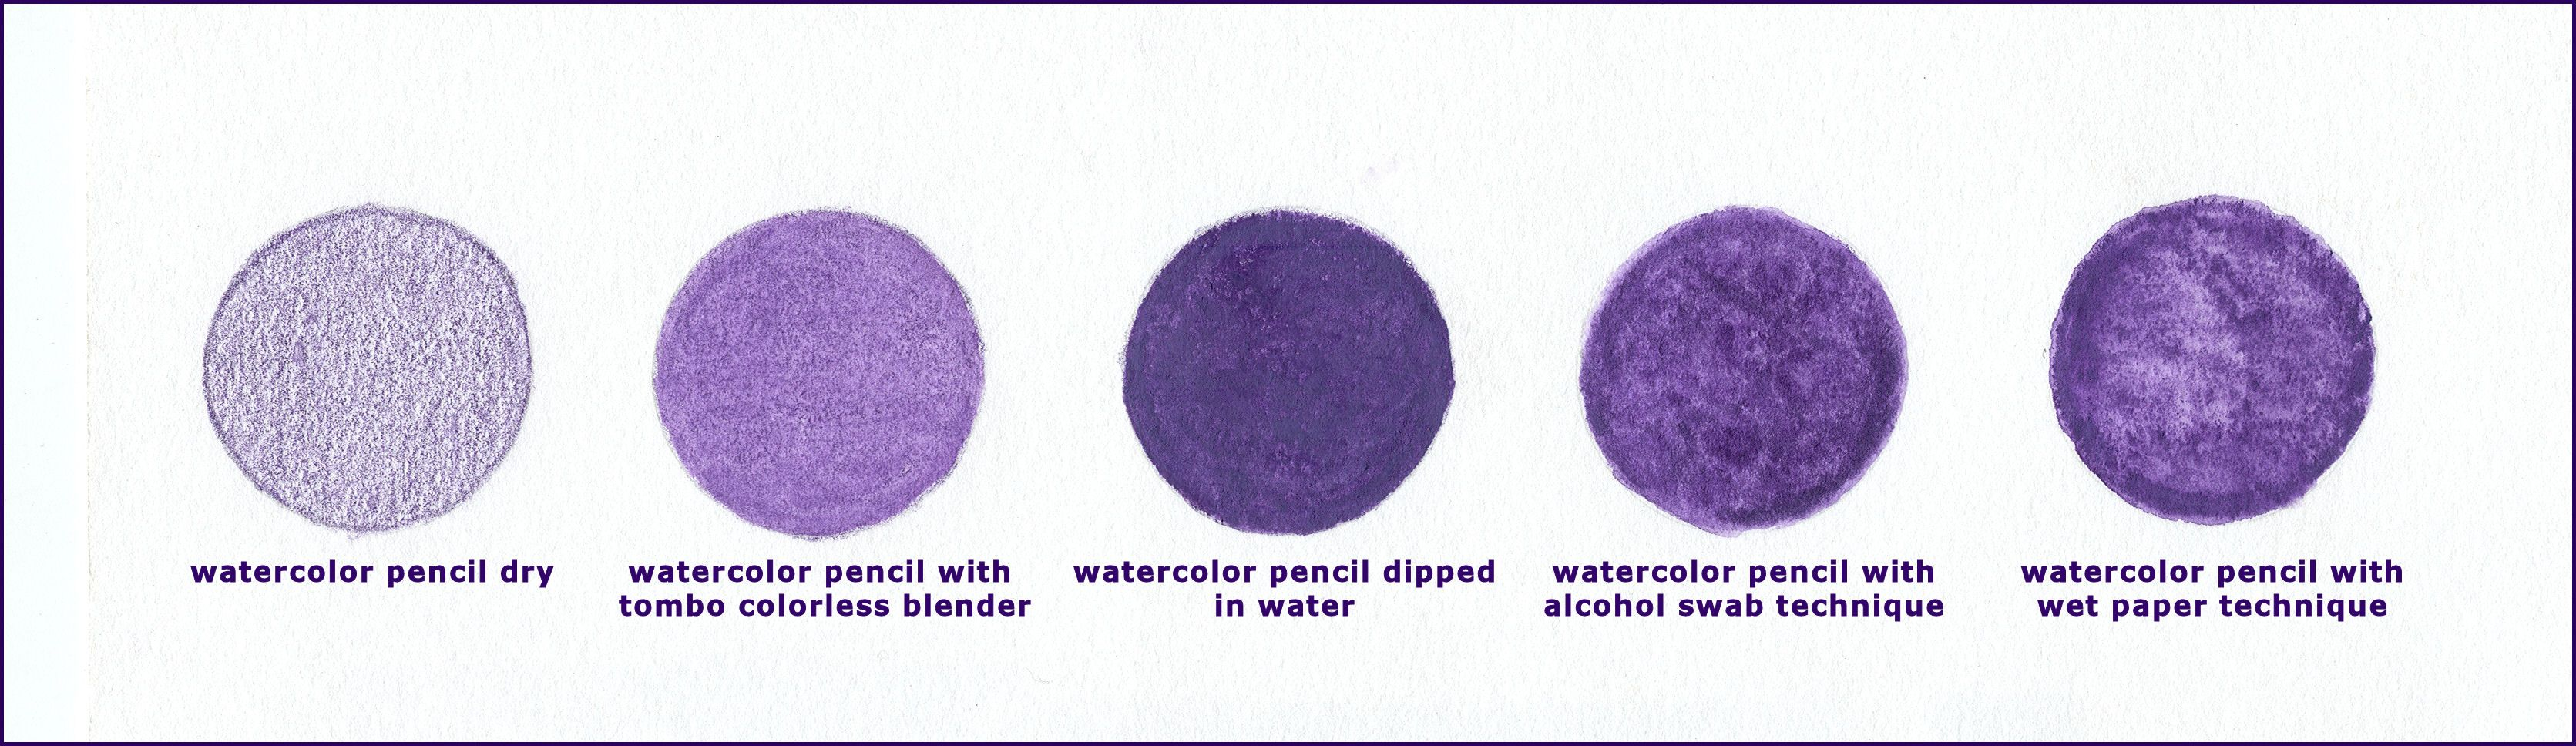 Watercolor Pencil Tips Techniques Watercolor Pencils